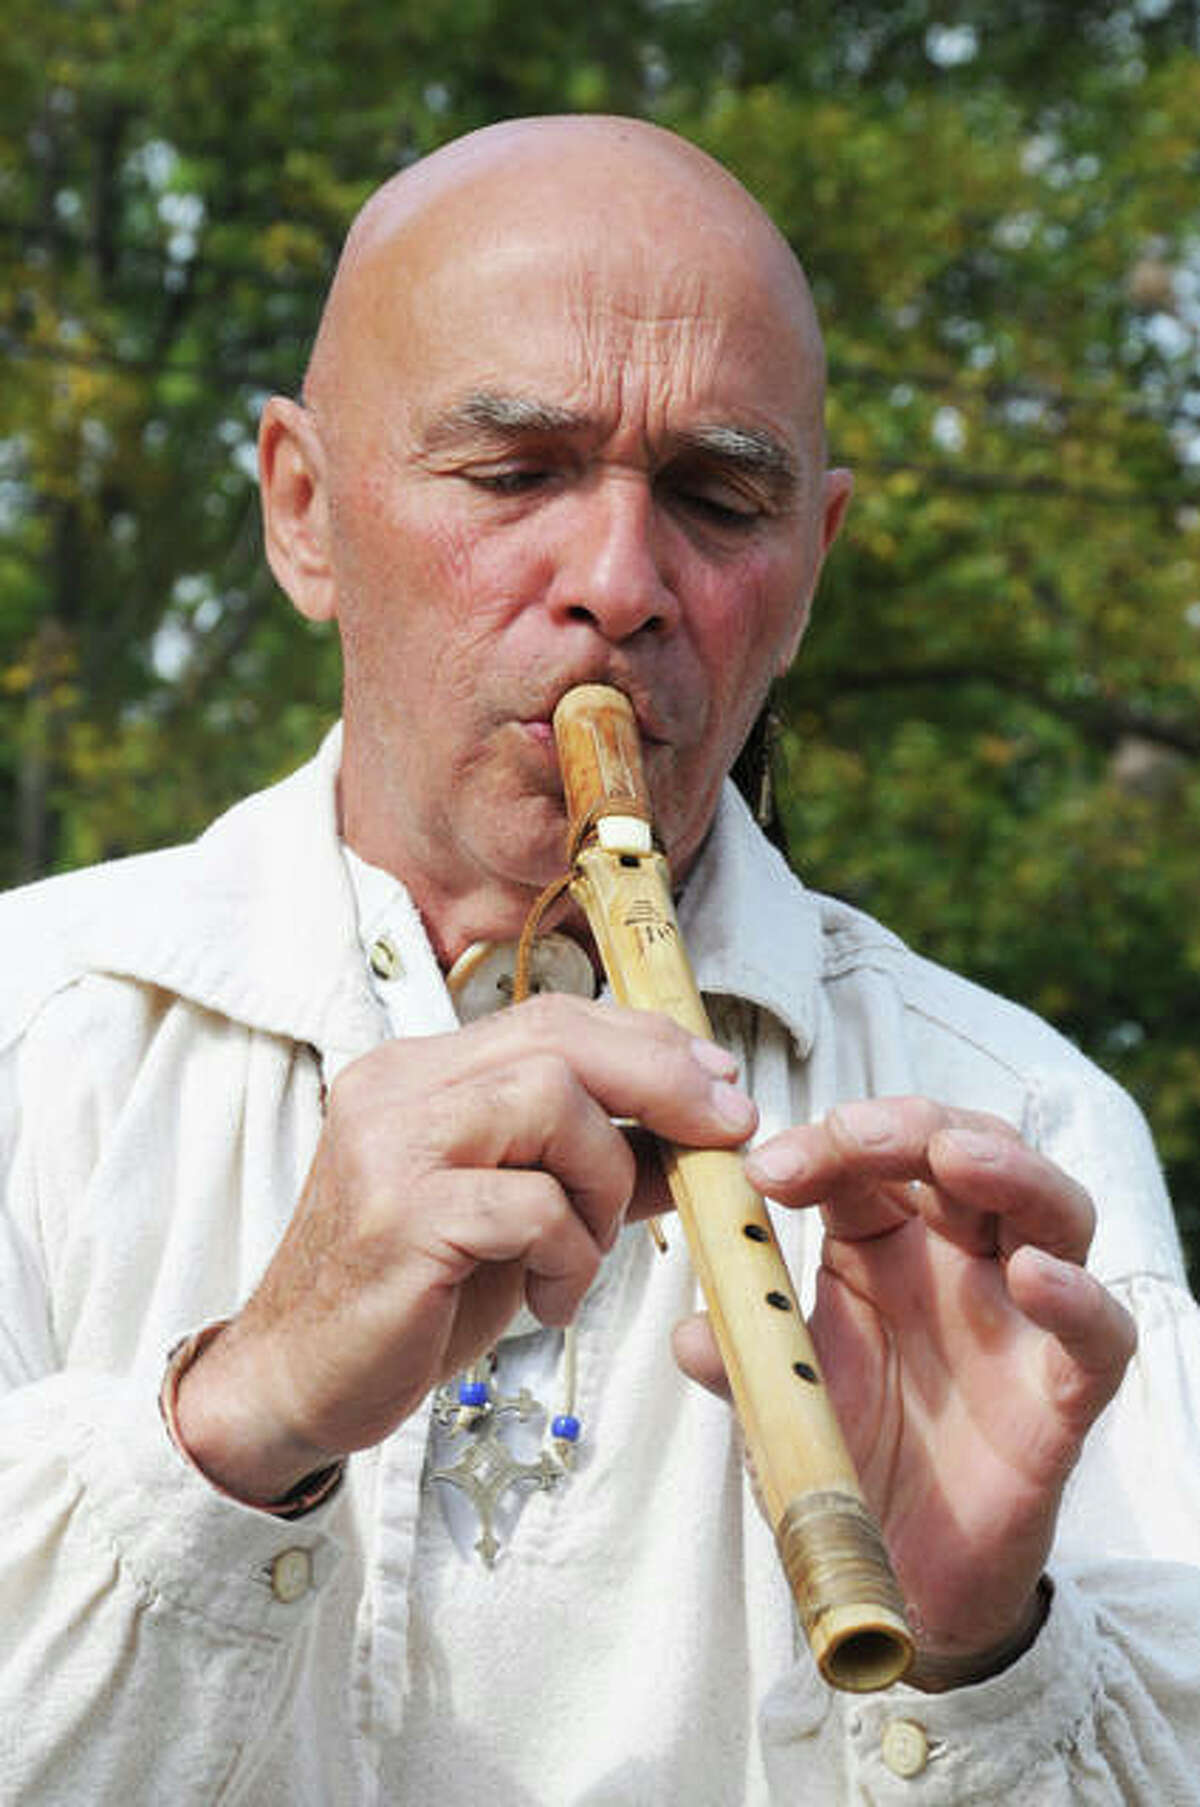 Harris plays a Native American musical instrument during the Grafton Rendezvous Sunday.